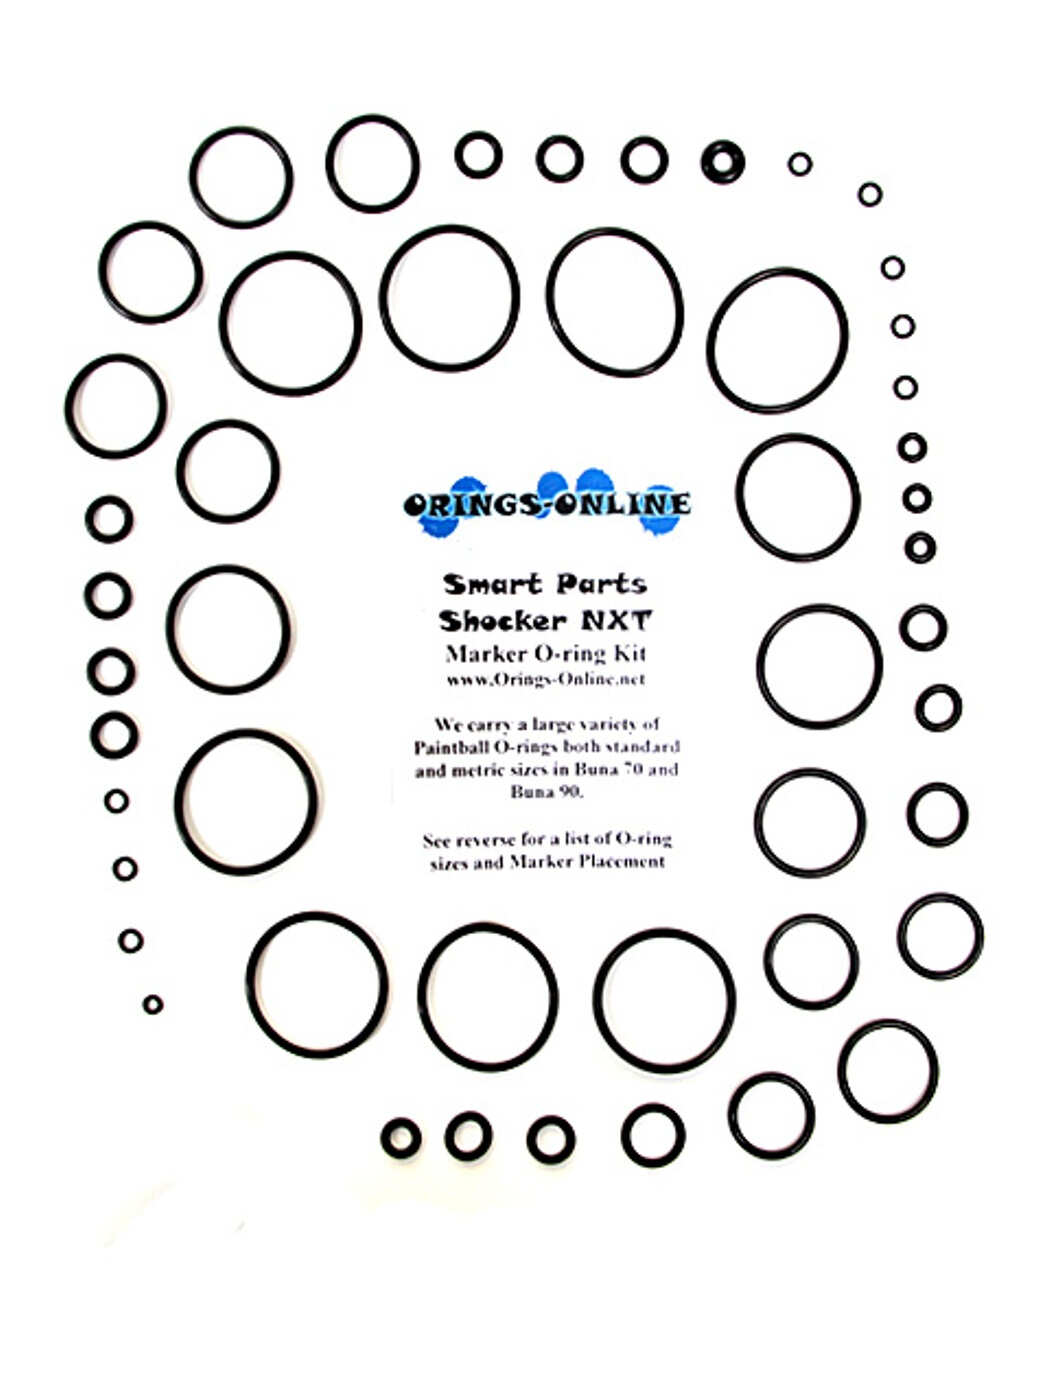 Smart Parts - Shocker NXT Marker O-ring Kit